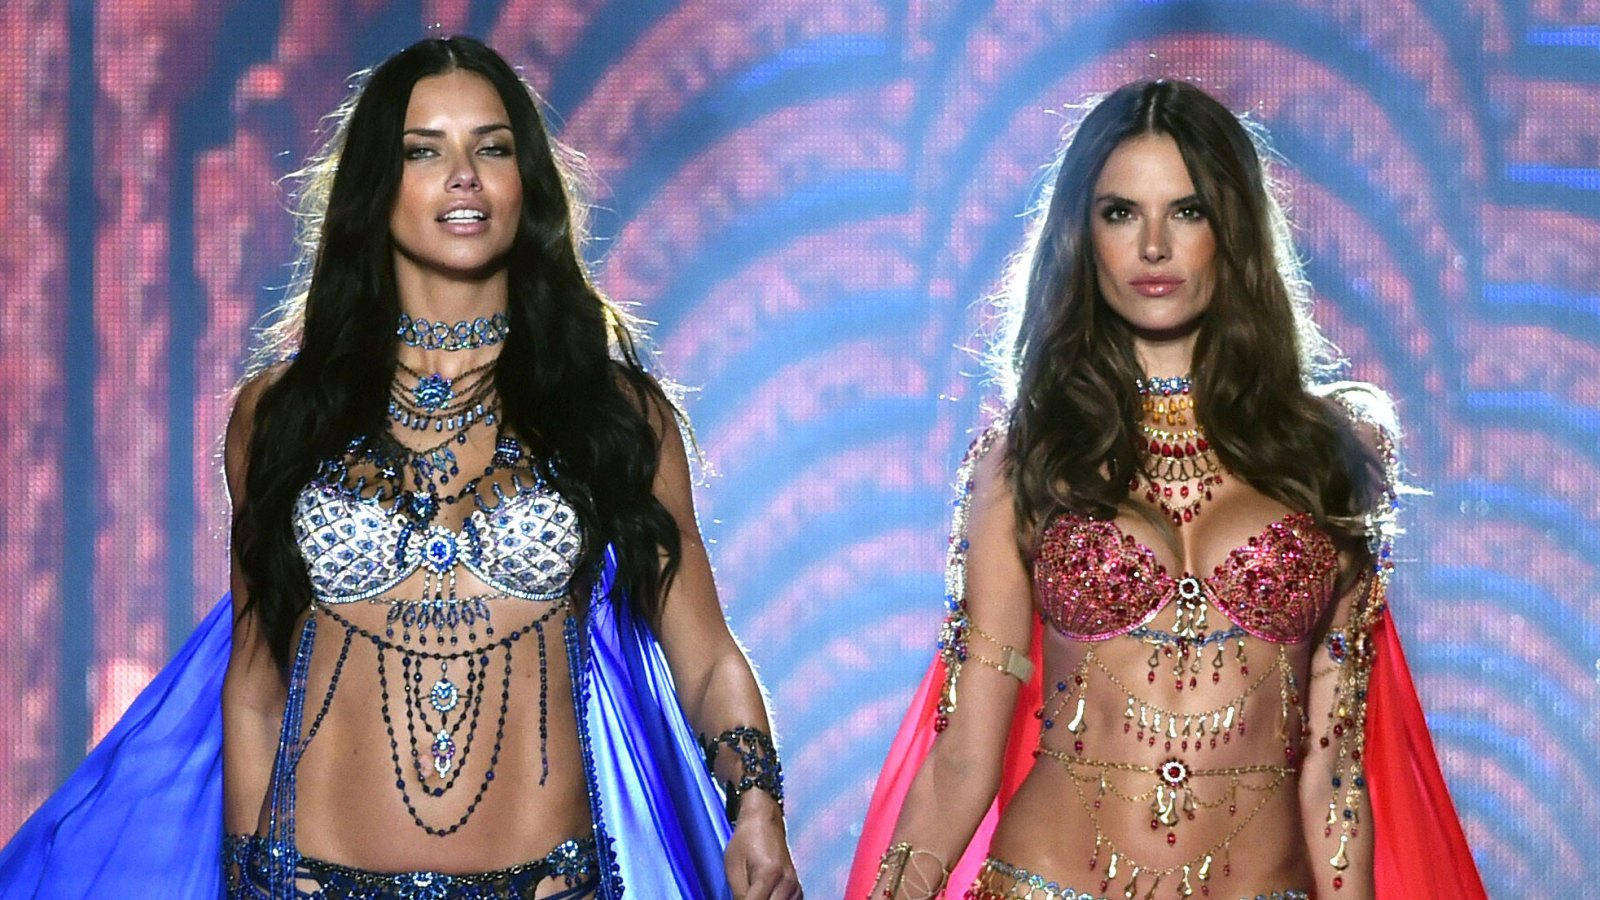 44ae211eb0199 All of the Victoria s Secret Fantasy Bras Worn for the Fashion Show Over  the Past Decade